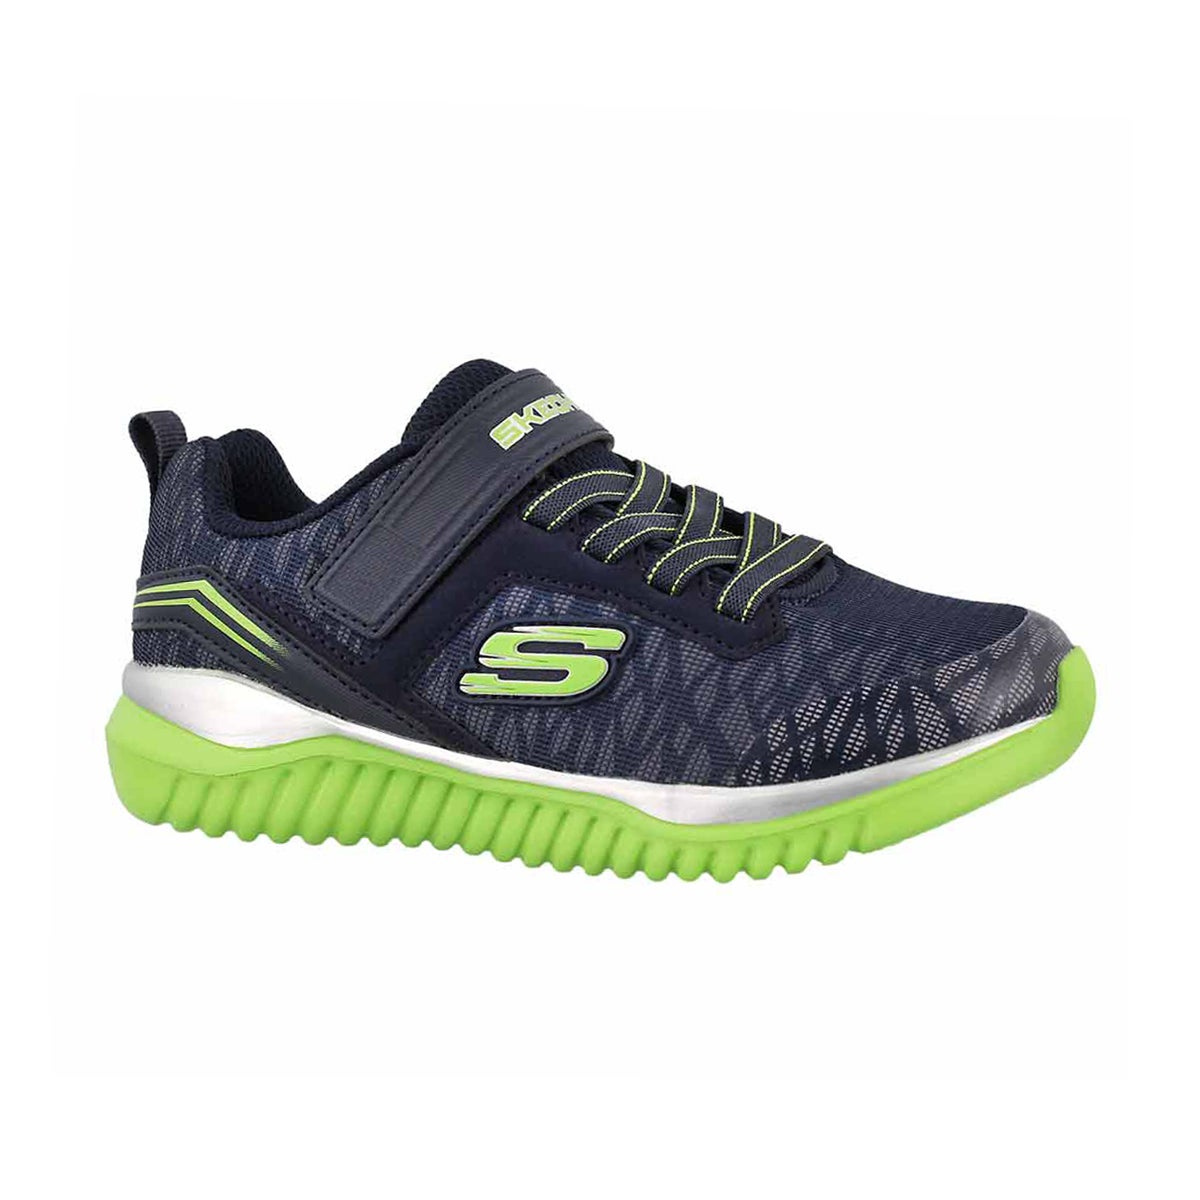 Boys' TURBOSHIFT navy/lime sneakers